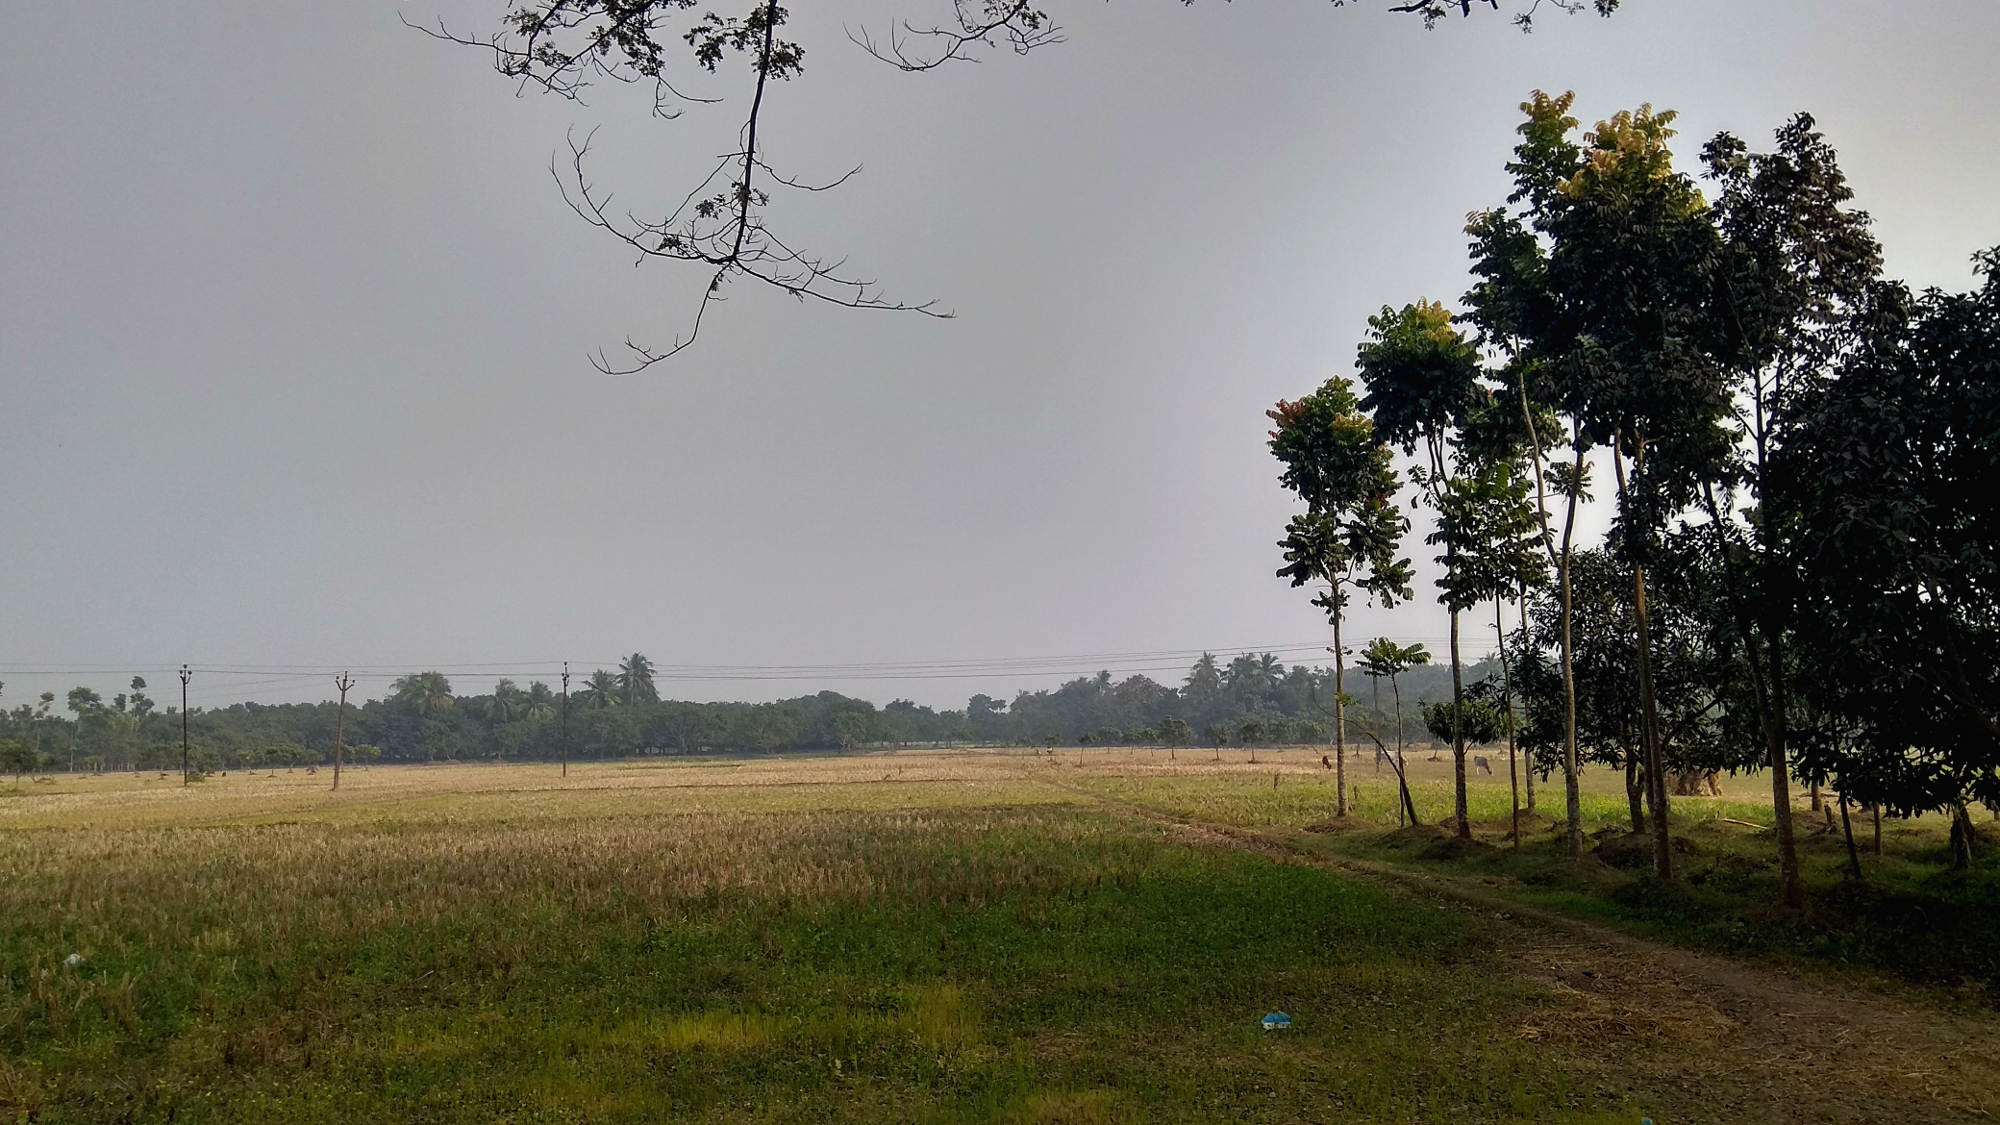 The picture portrays the beautiful landscape of our rural agricultural areas.